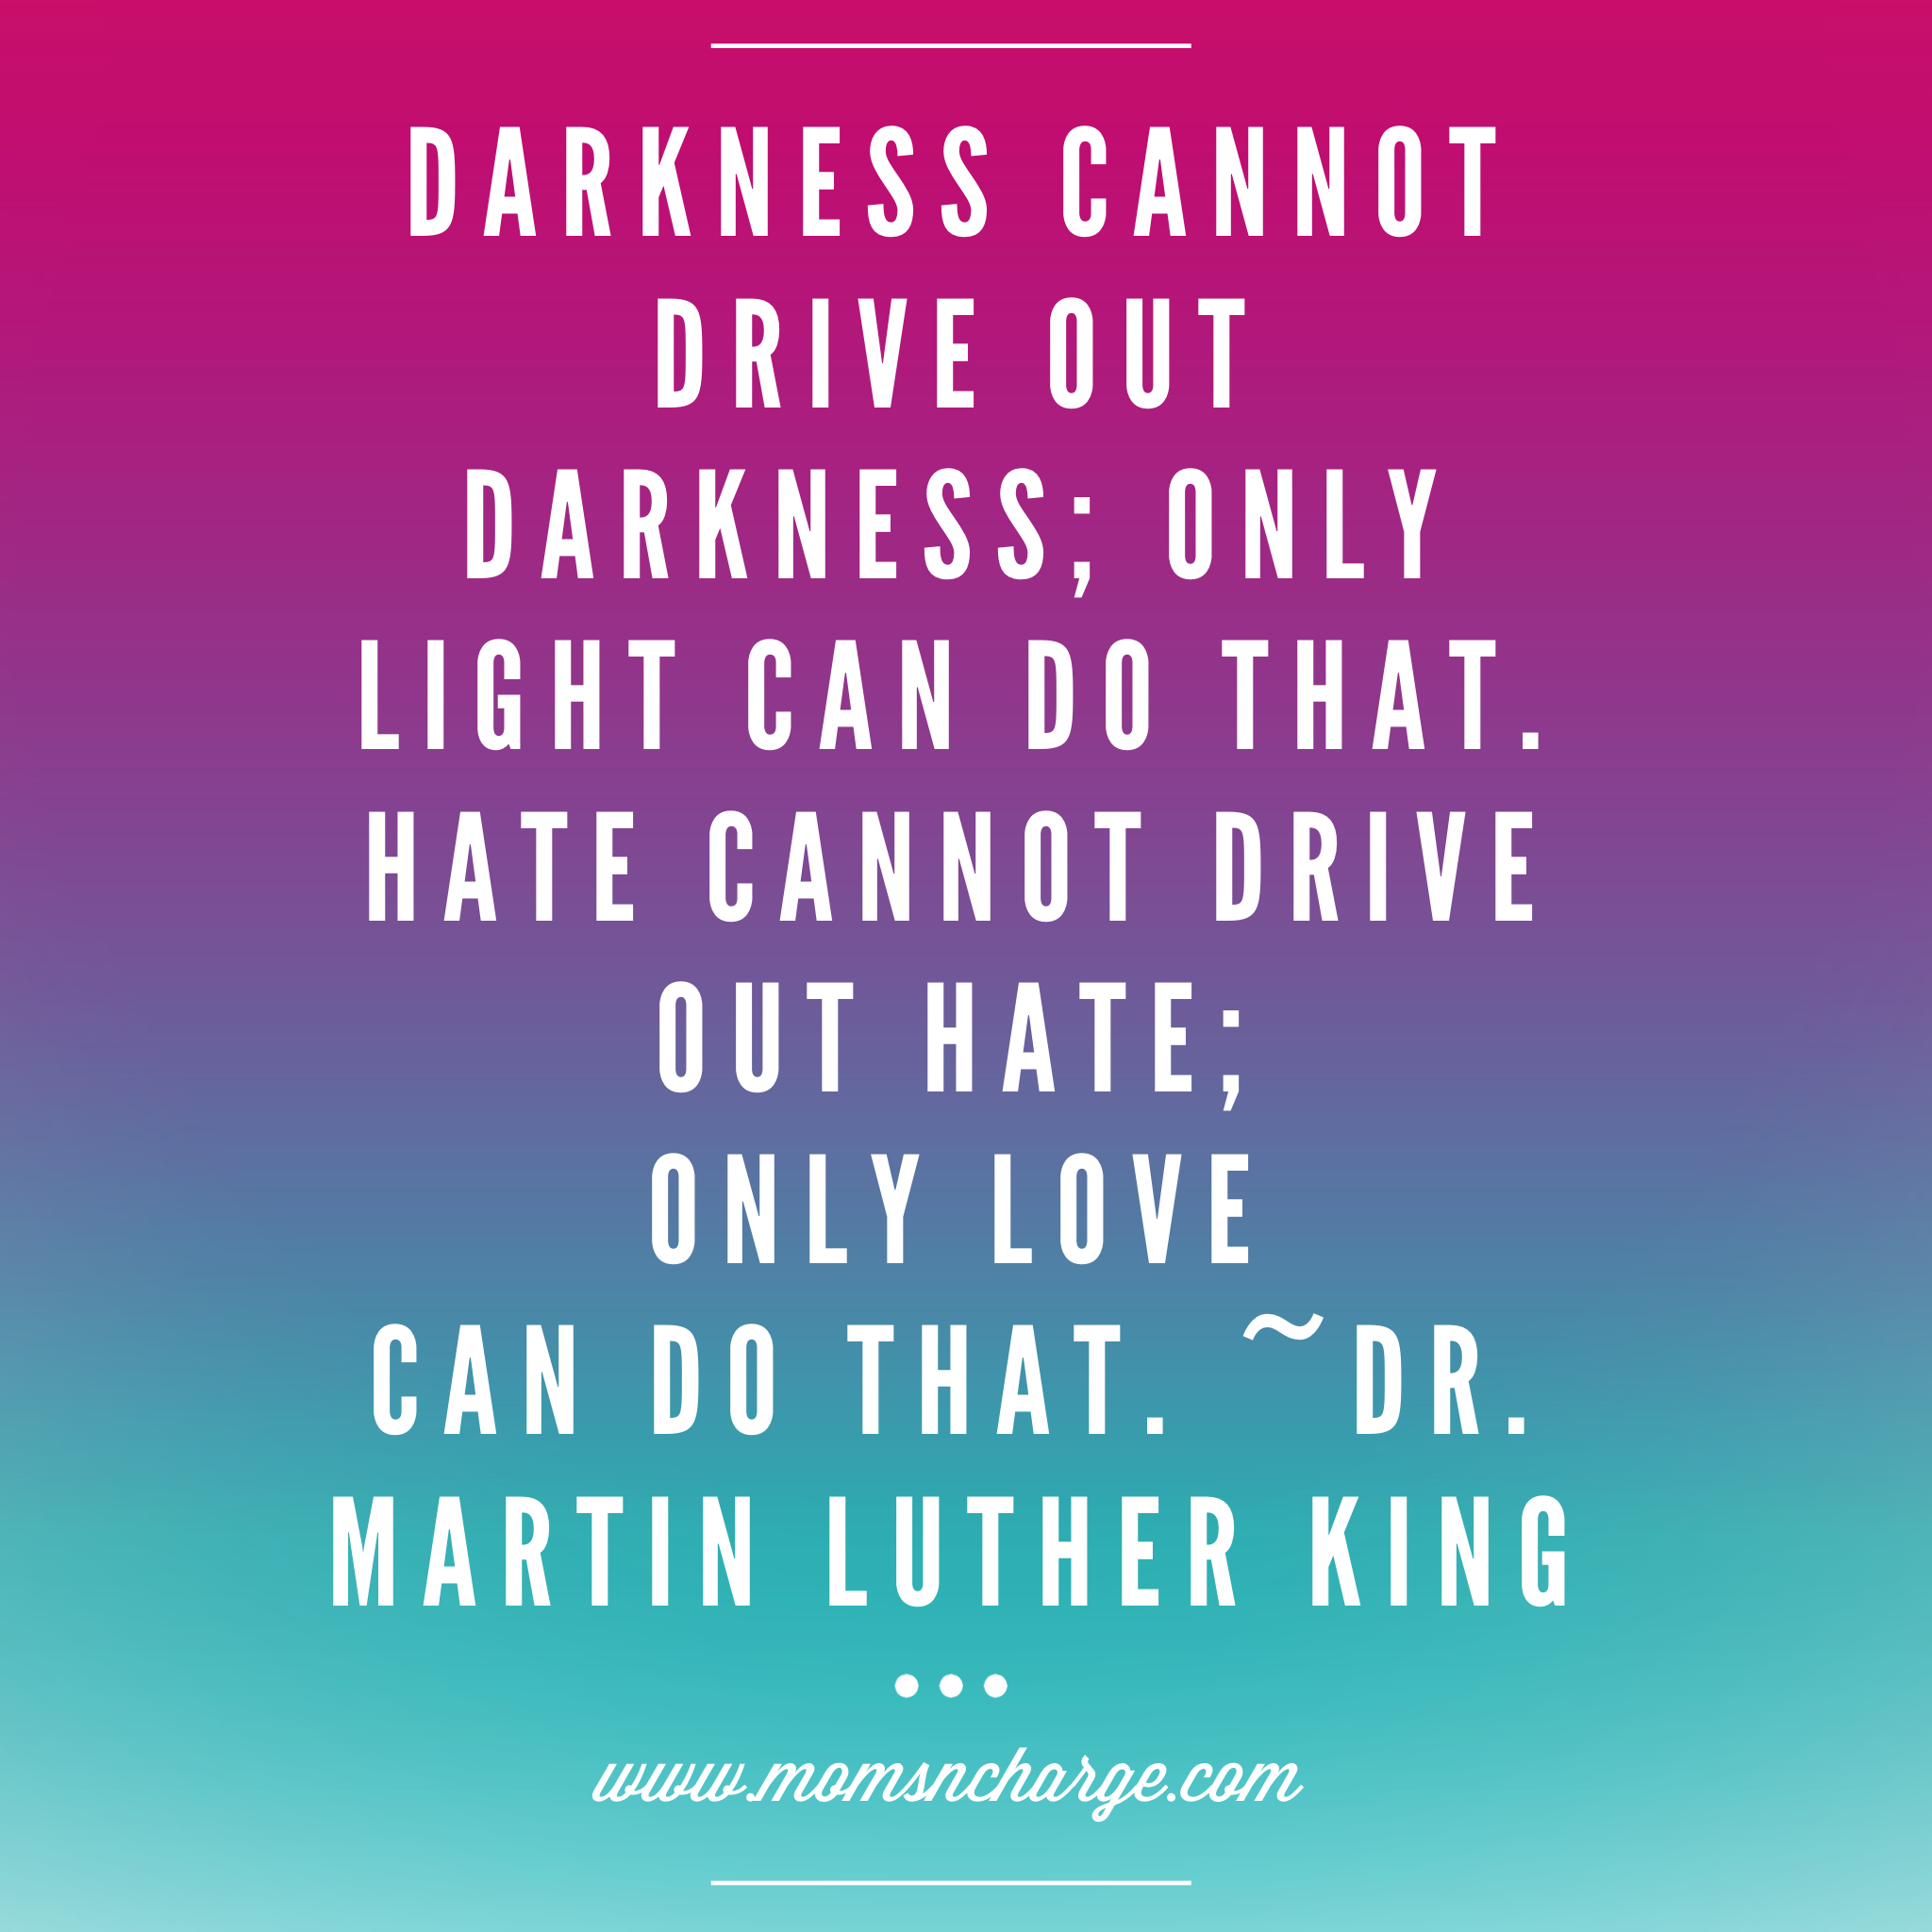 Martin Luther King Love Quotes 5 Powerful Quotes On Faith From Drmartin Luther King Jr Mlk